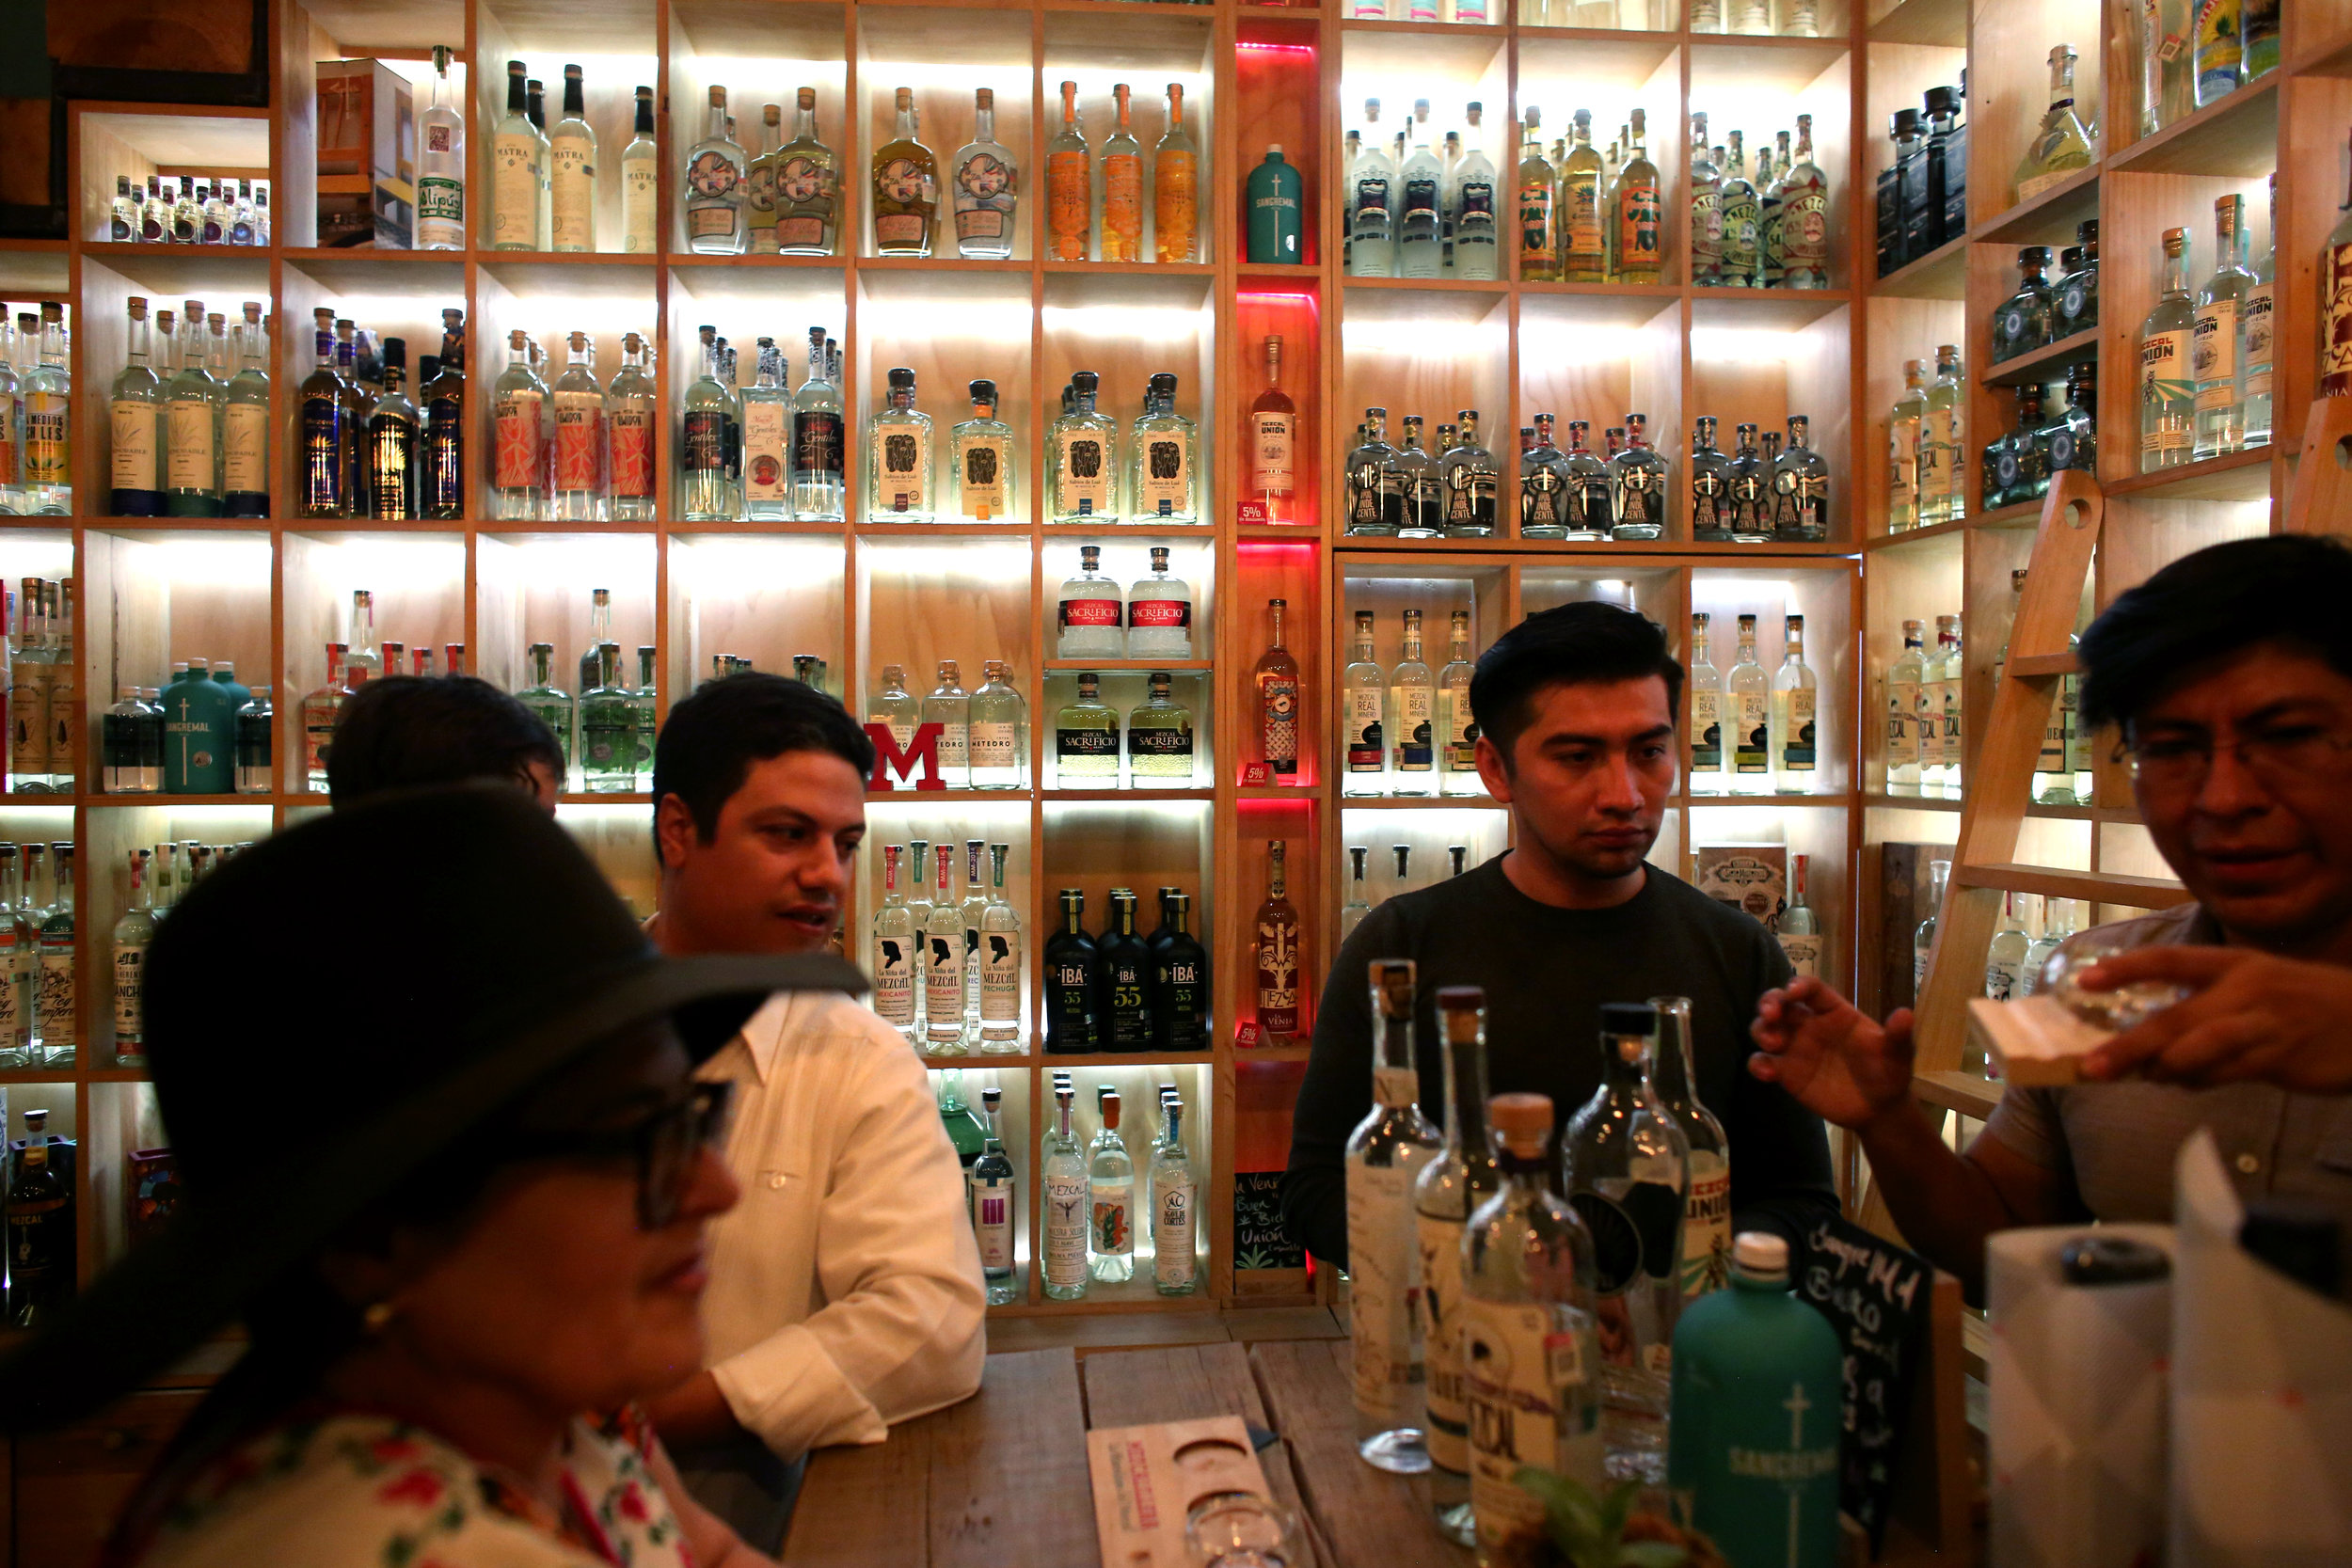 Tourists from Guadalajara sample mezcals at Mezcalilira in  Oaxaca City, Oaxaca.